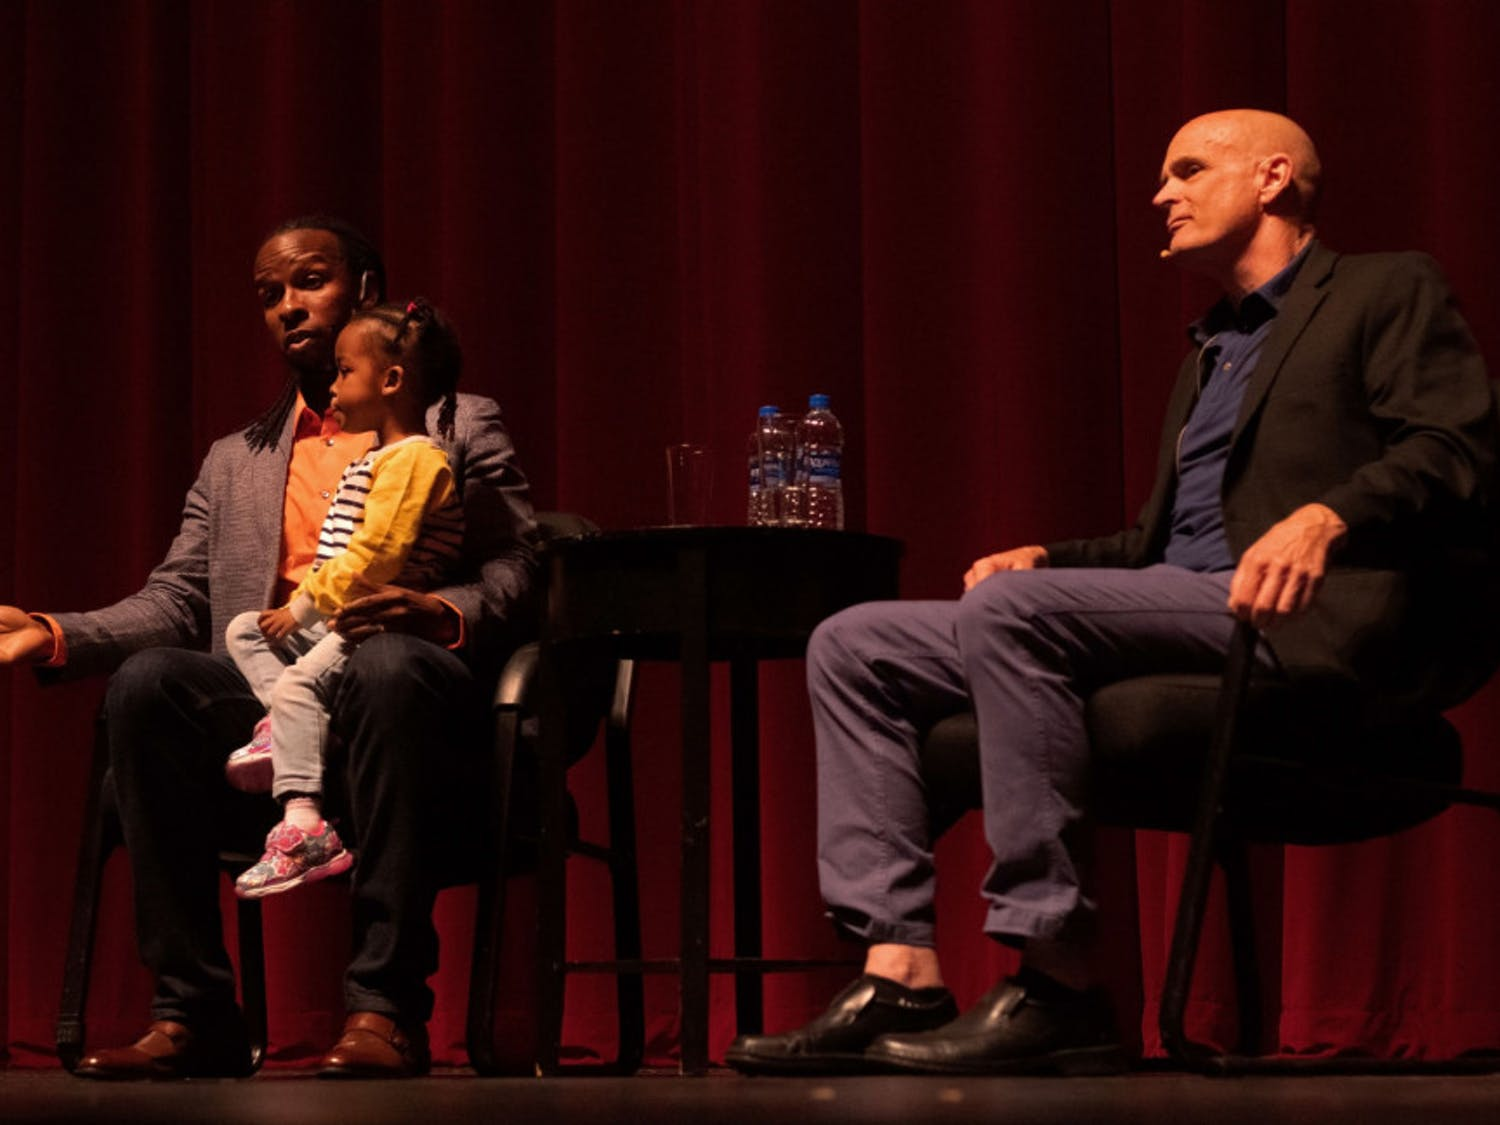 Ibram X. Kendi answers an audience question during a question and answer session moderated by author and history professor Jack Davis while Kendi's daughter sits in his lap at the Phillips Center for the Performing Arts Thursday night. About 1,230 people attended the event.